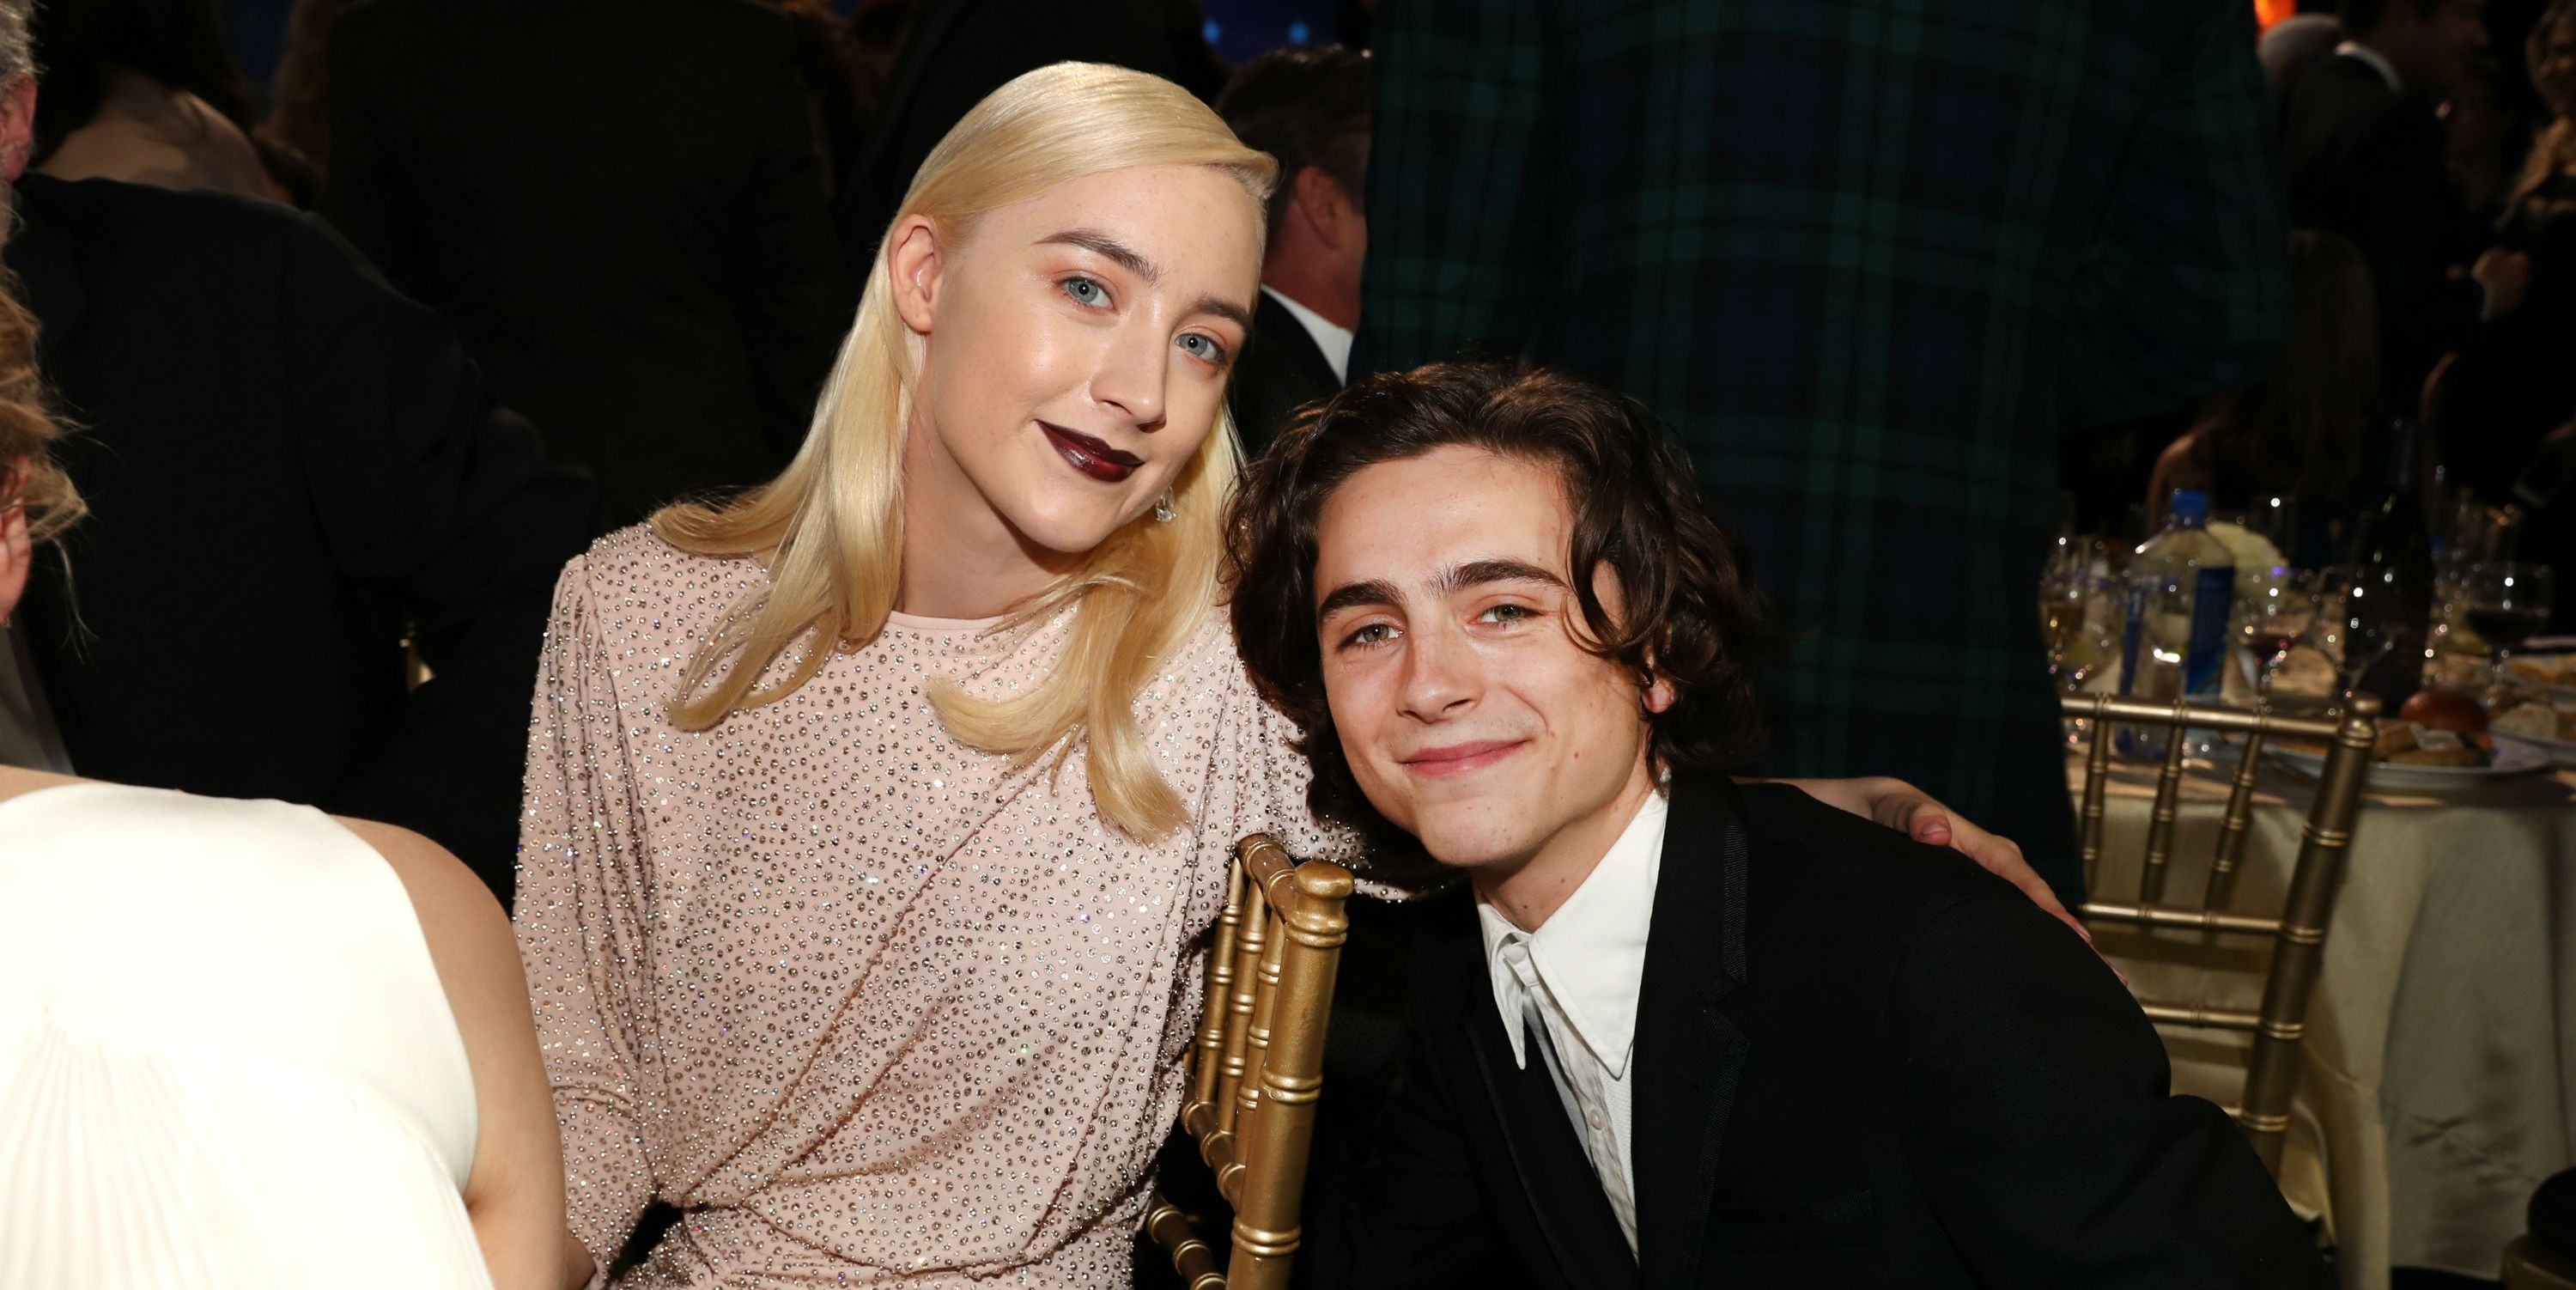 Saoirse Ronan and Timothee Chalamet in January 2018